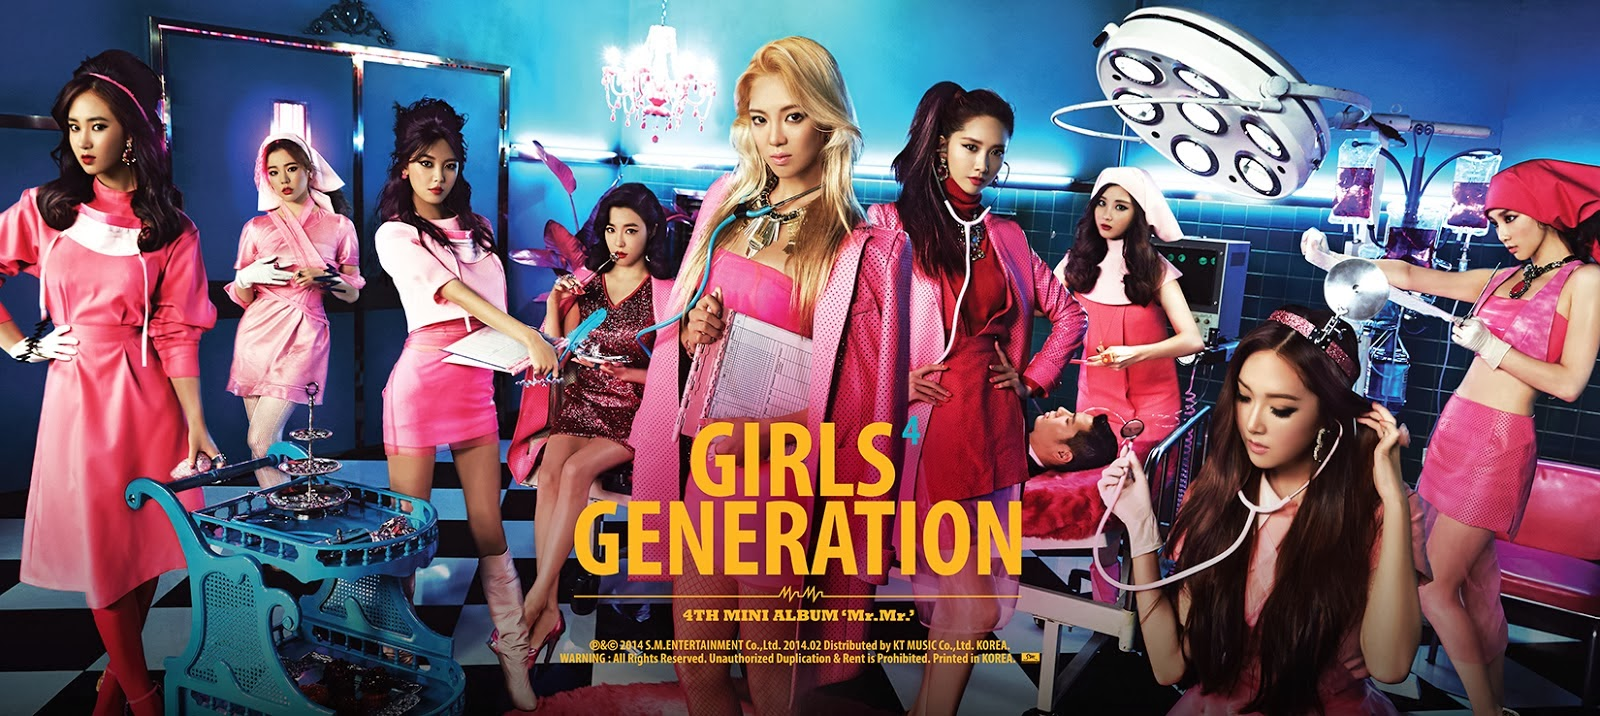 SNSD Mr Mr Wallpaper HD Girls Generation